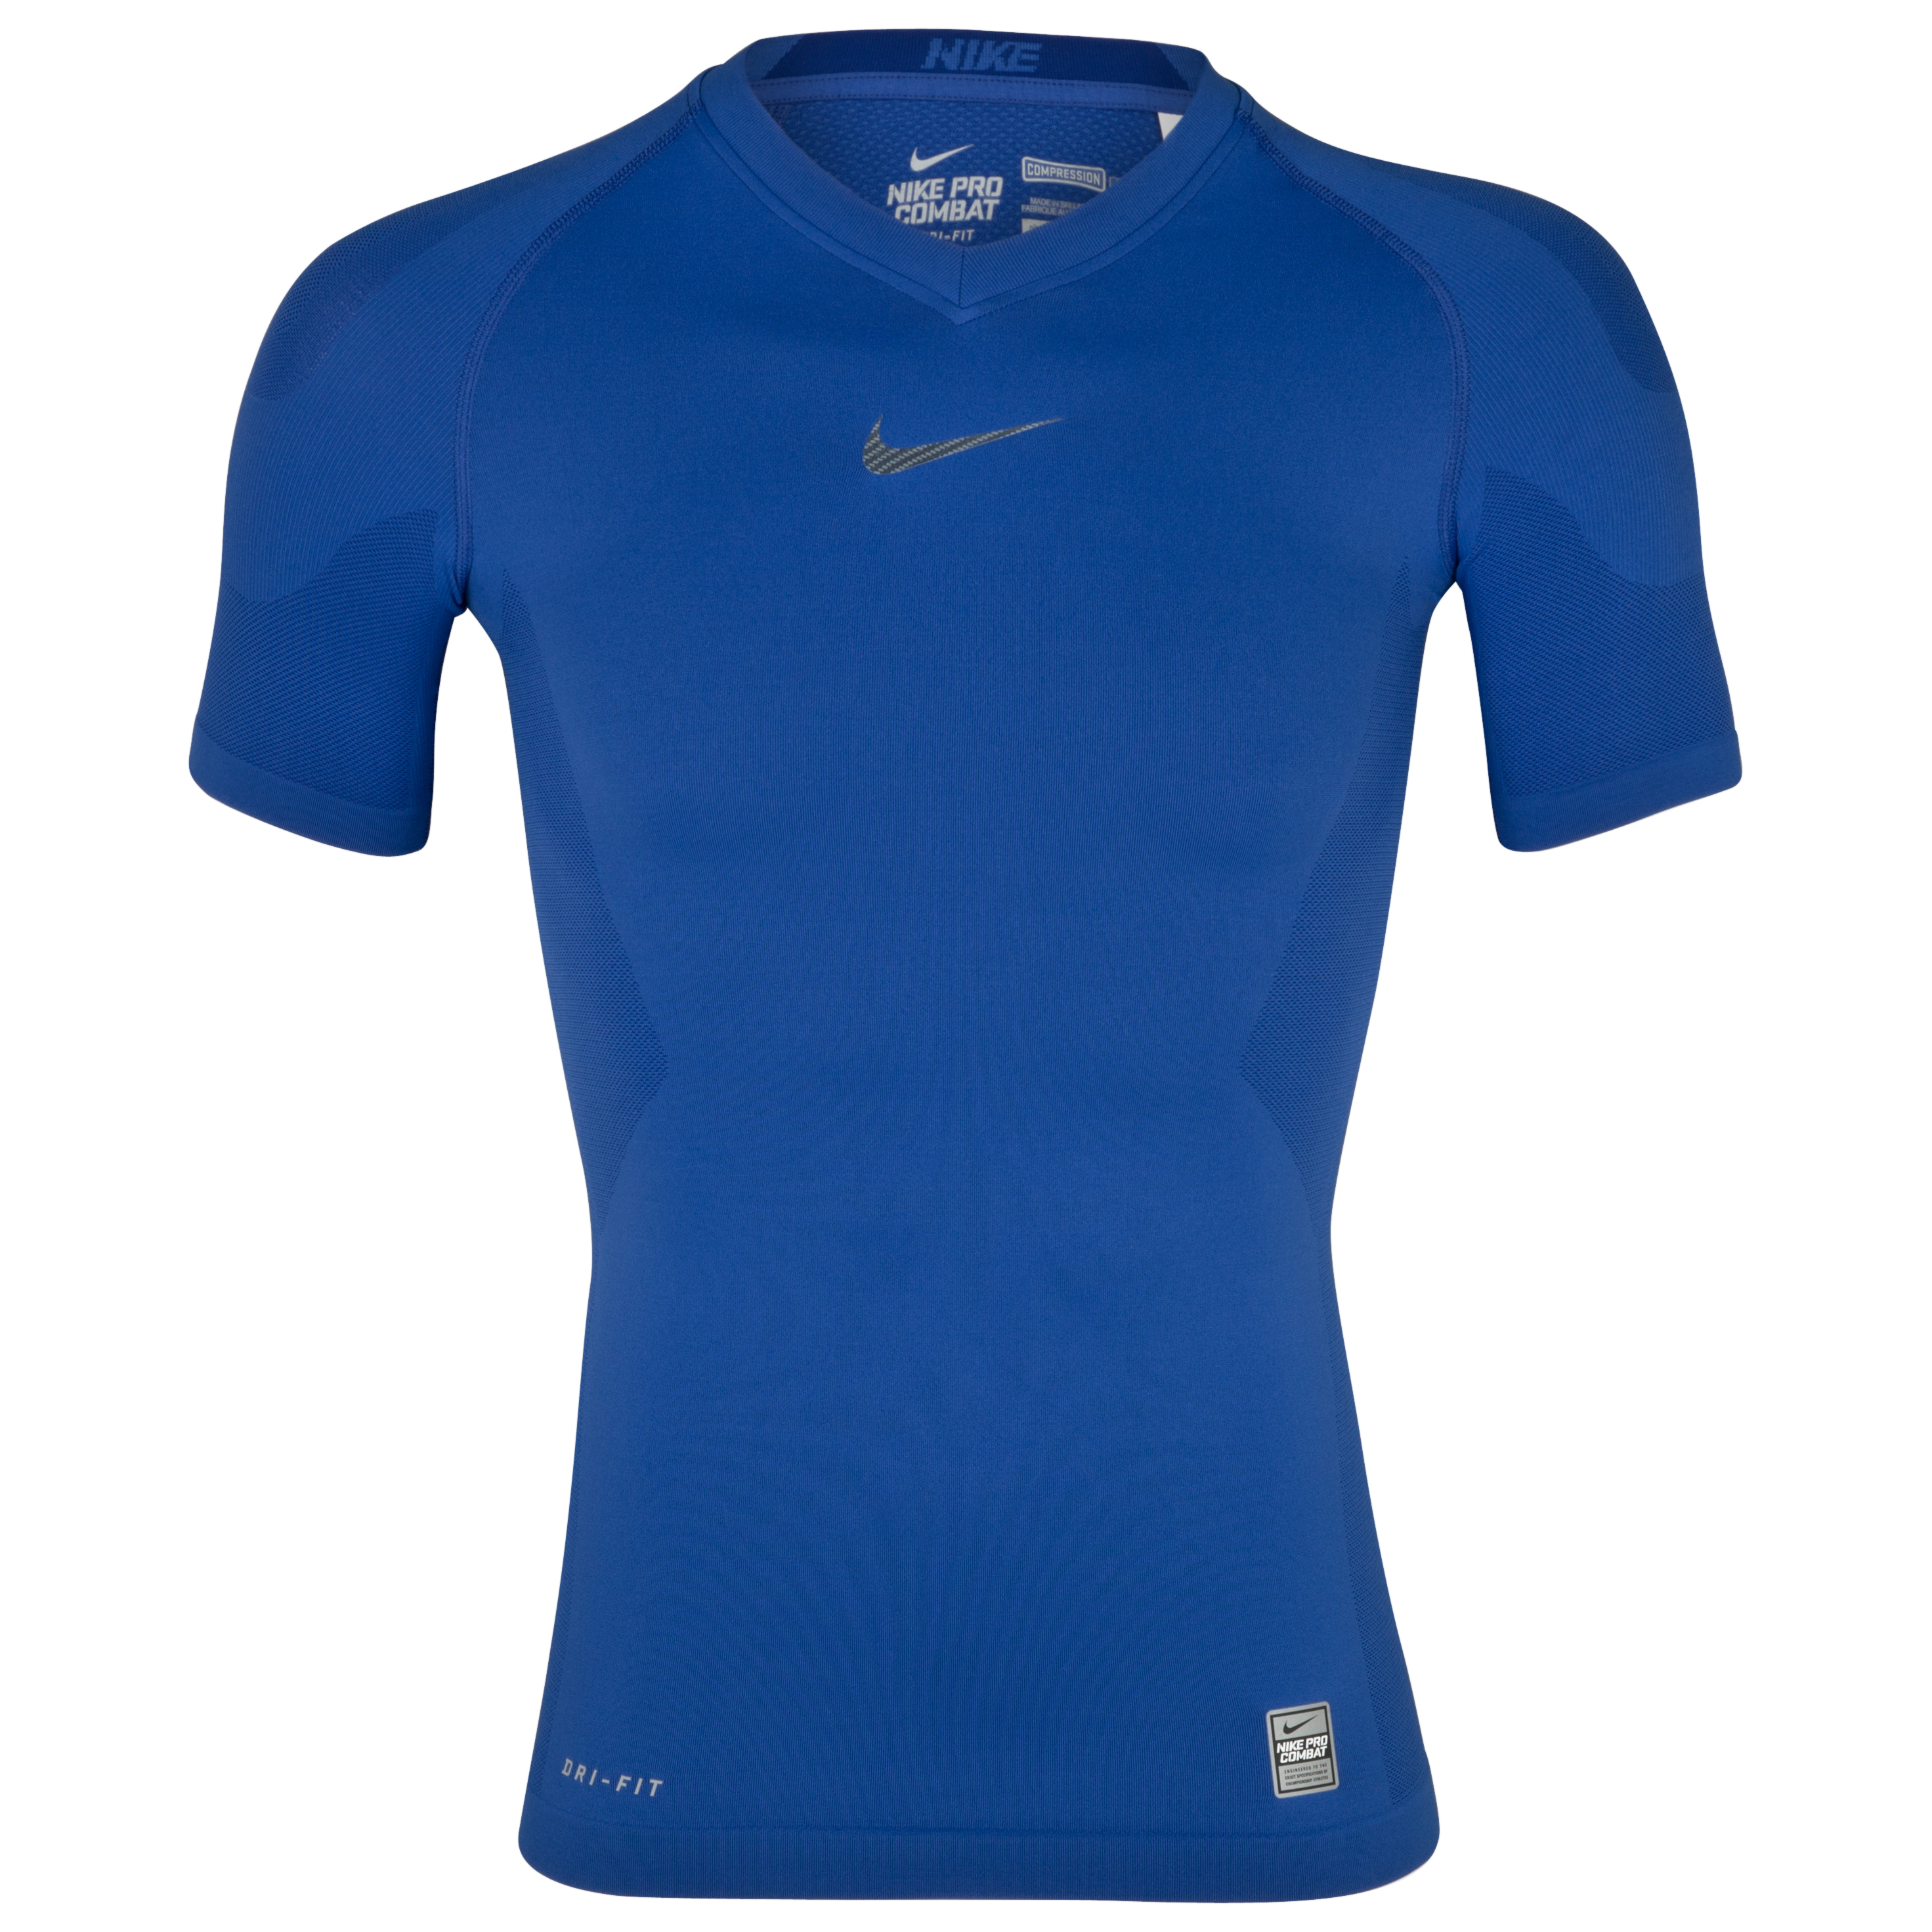 Nike Pro Combat Hypercool Vapor Top - Varsity Royal